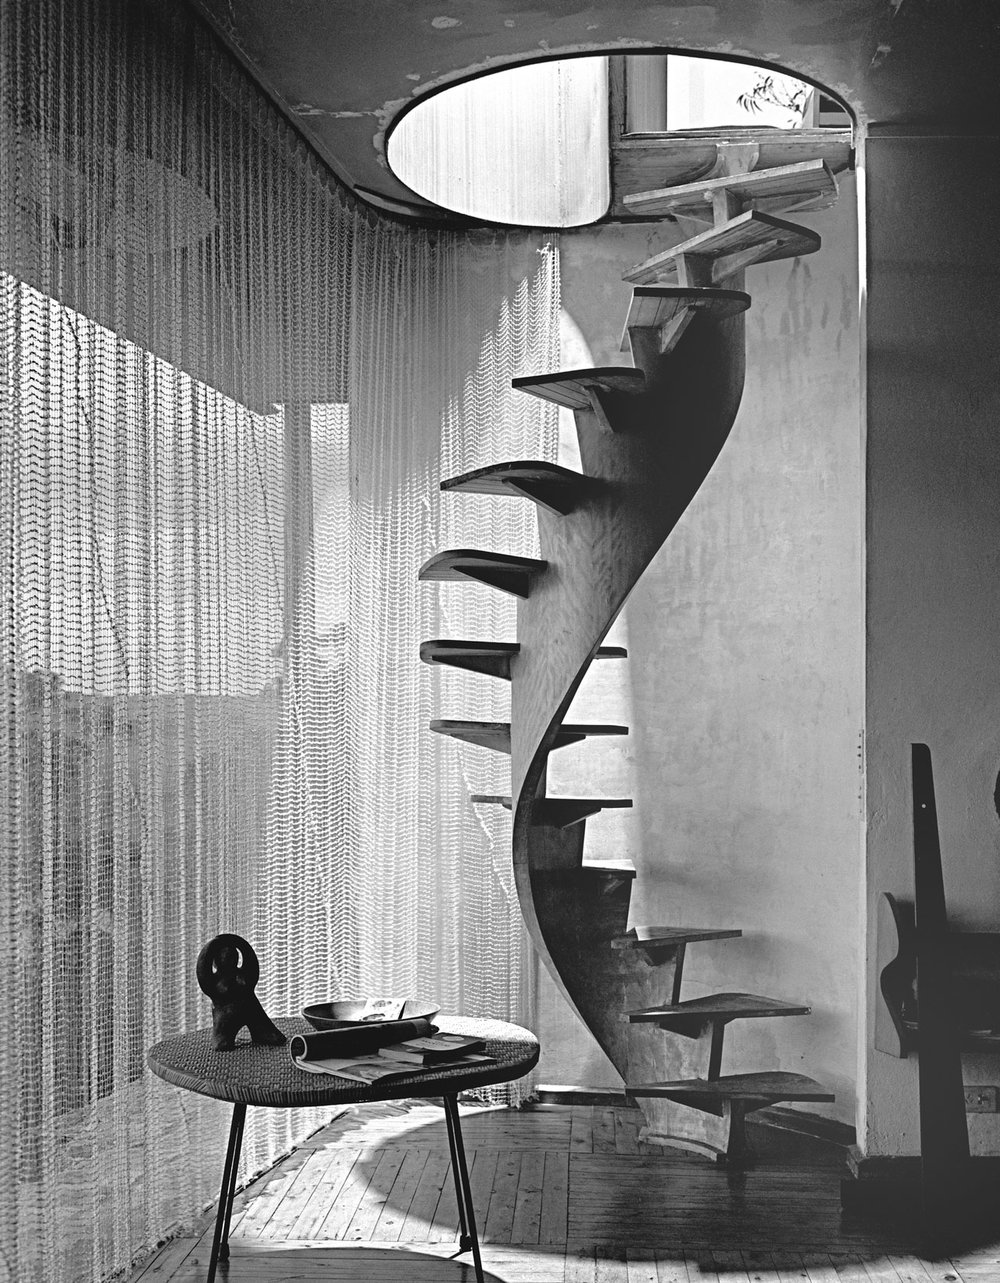 Buhrich House I, Castlecrag, designed by Hugh Buhrich, Max Dupain, 1958. Max Dupain Exhibition Archive: 2975A, State Library of NSW. Courtesy and ©J W Thompson Australia